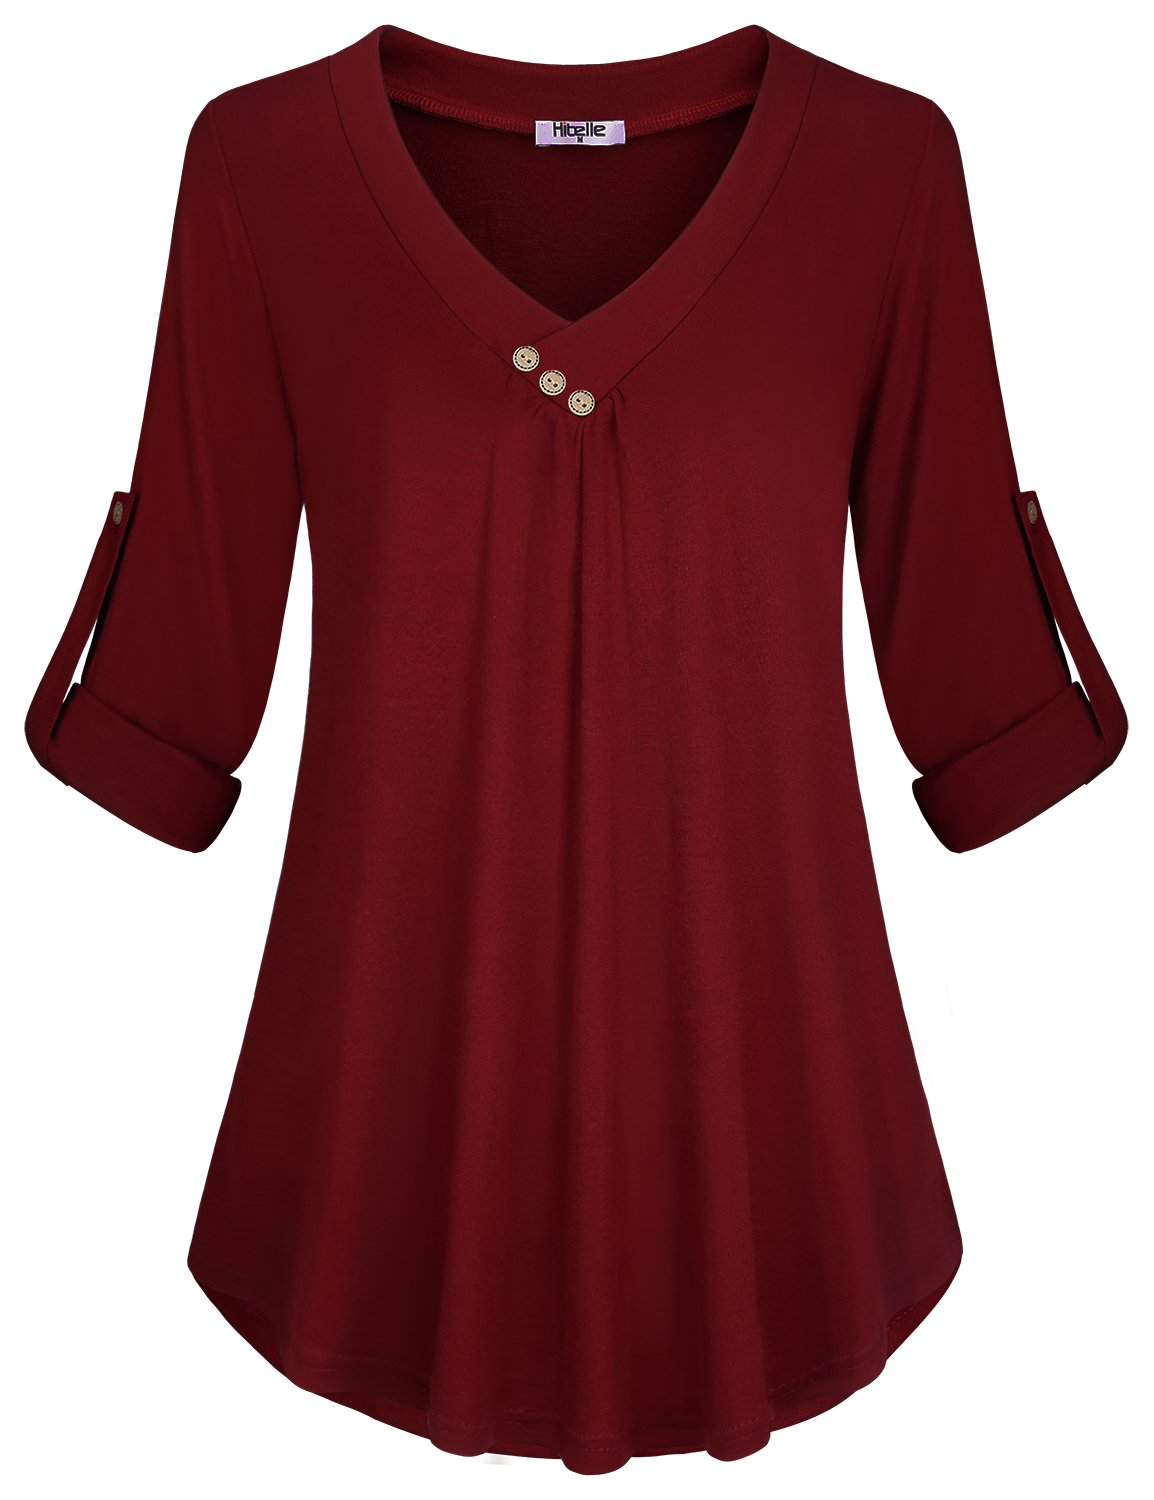 Hibelle Blouses Women Plus Size, Burgundy Pregnant Relaxed Fit Flare Flowy Tops Cross V-Neck Cuffed Sleeve Henley A Line Swing Casual Daily Work Shirts Tunics Wine Red XX Large